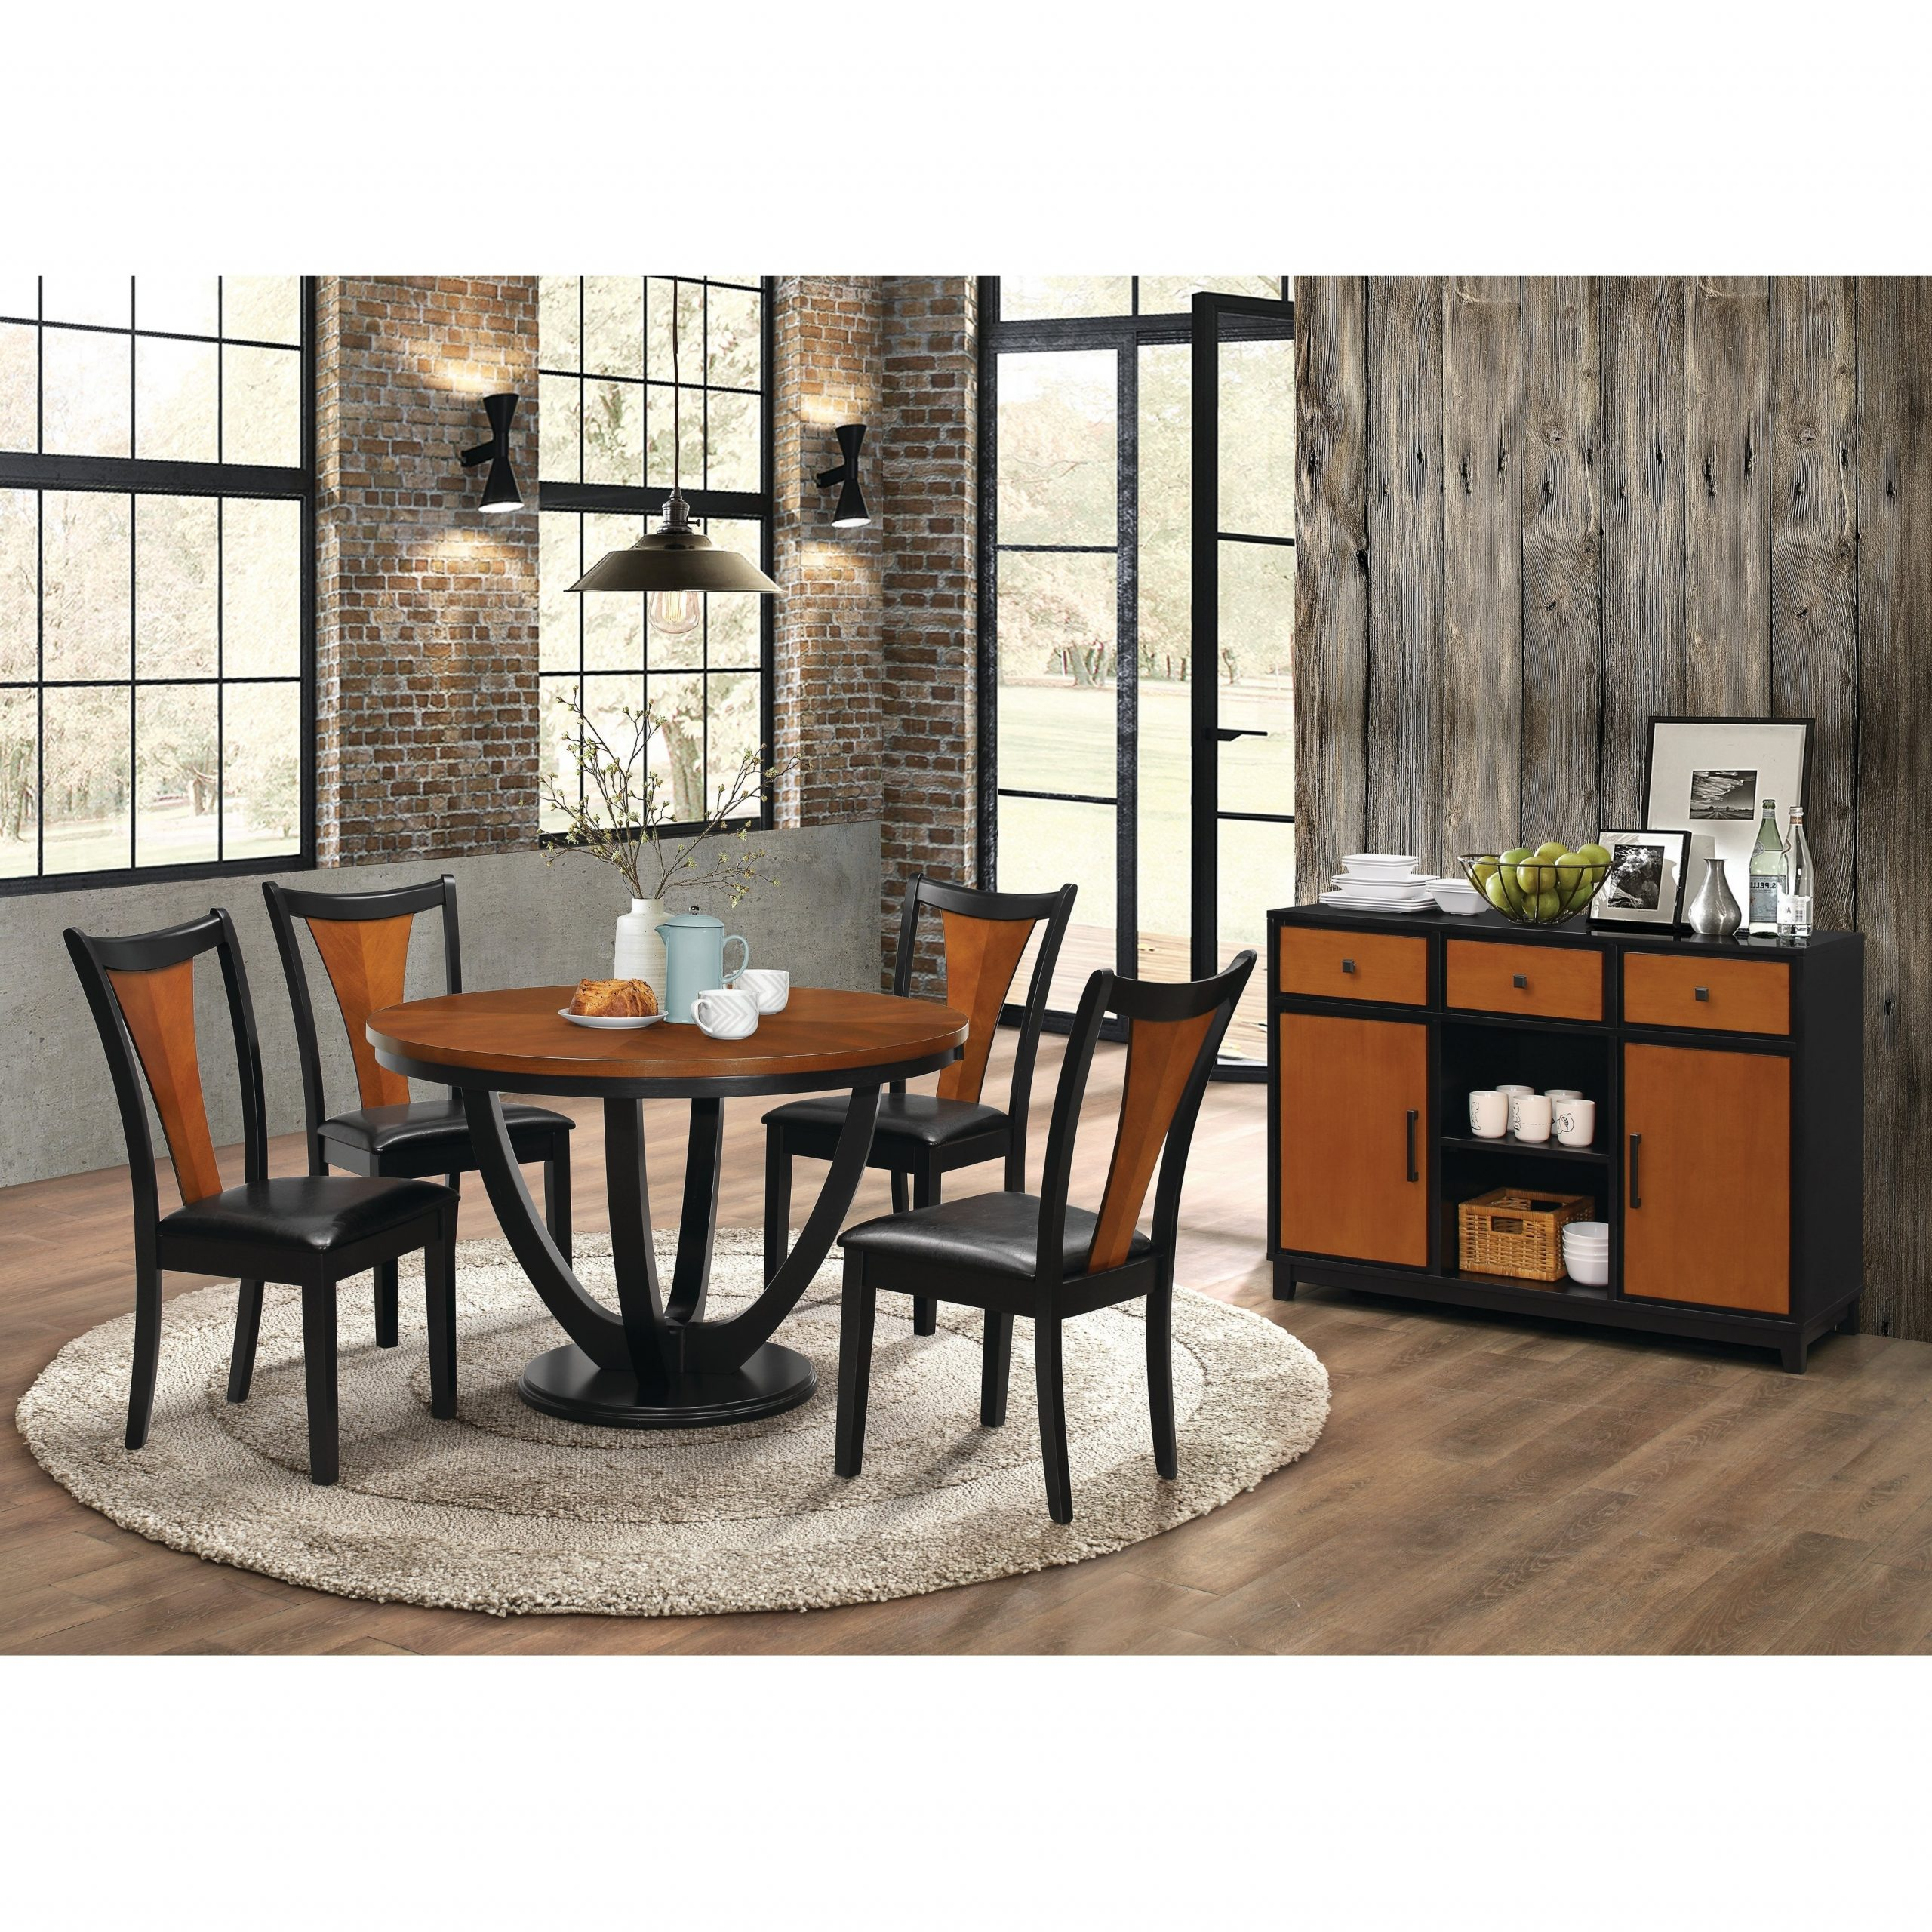 Well Liked Transitional 4 Seating Drop Leaf Casual Dining Tables With Boyer Transitional Amber And Black 5 Piece Dining Set (Gallery 14 of 30)